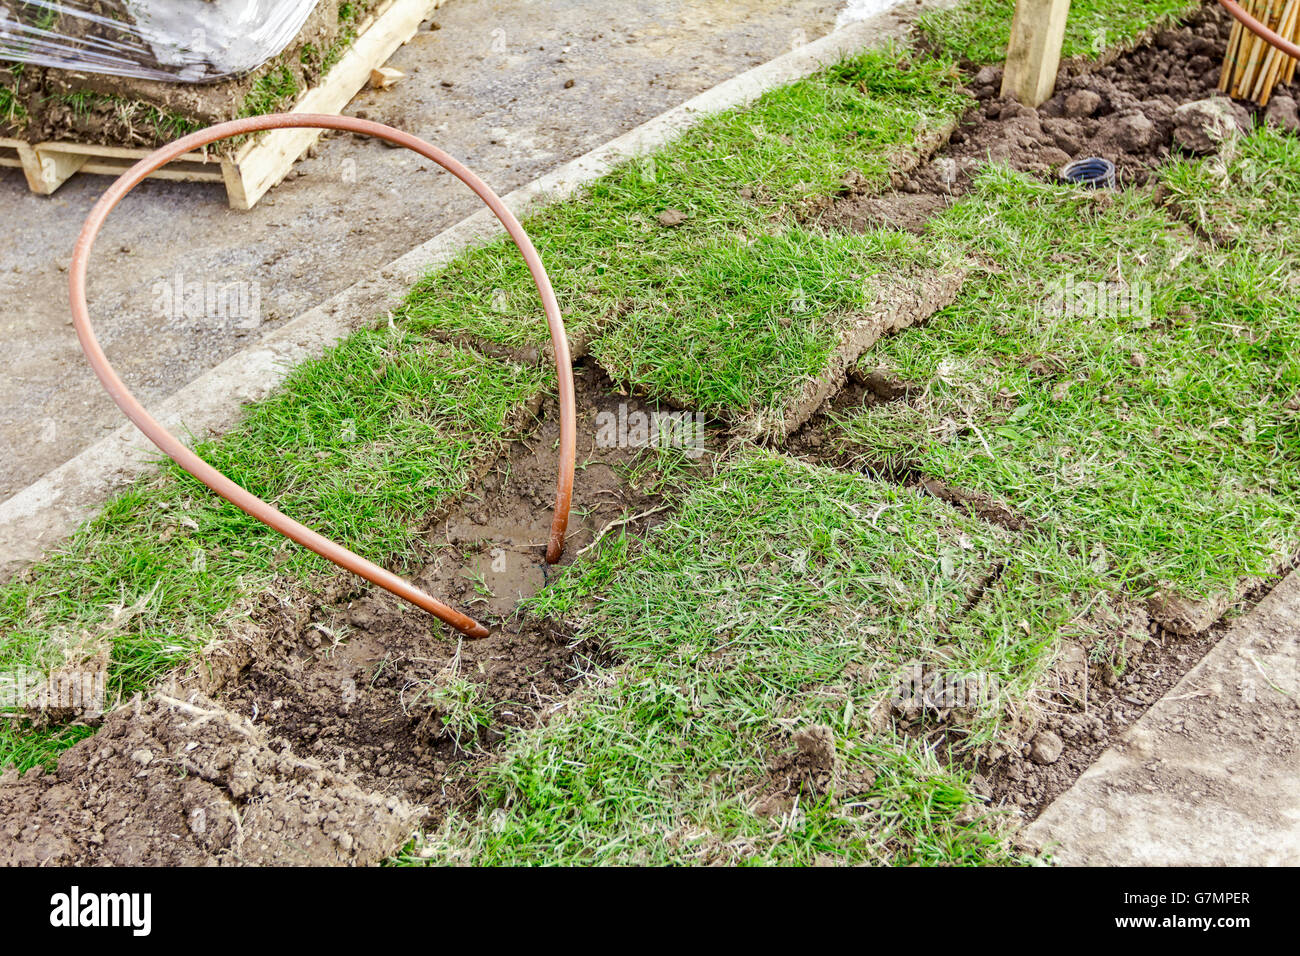 Bended copper pipe is coming out from the ground around grass roots. - Stock Image